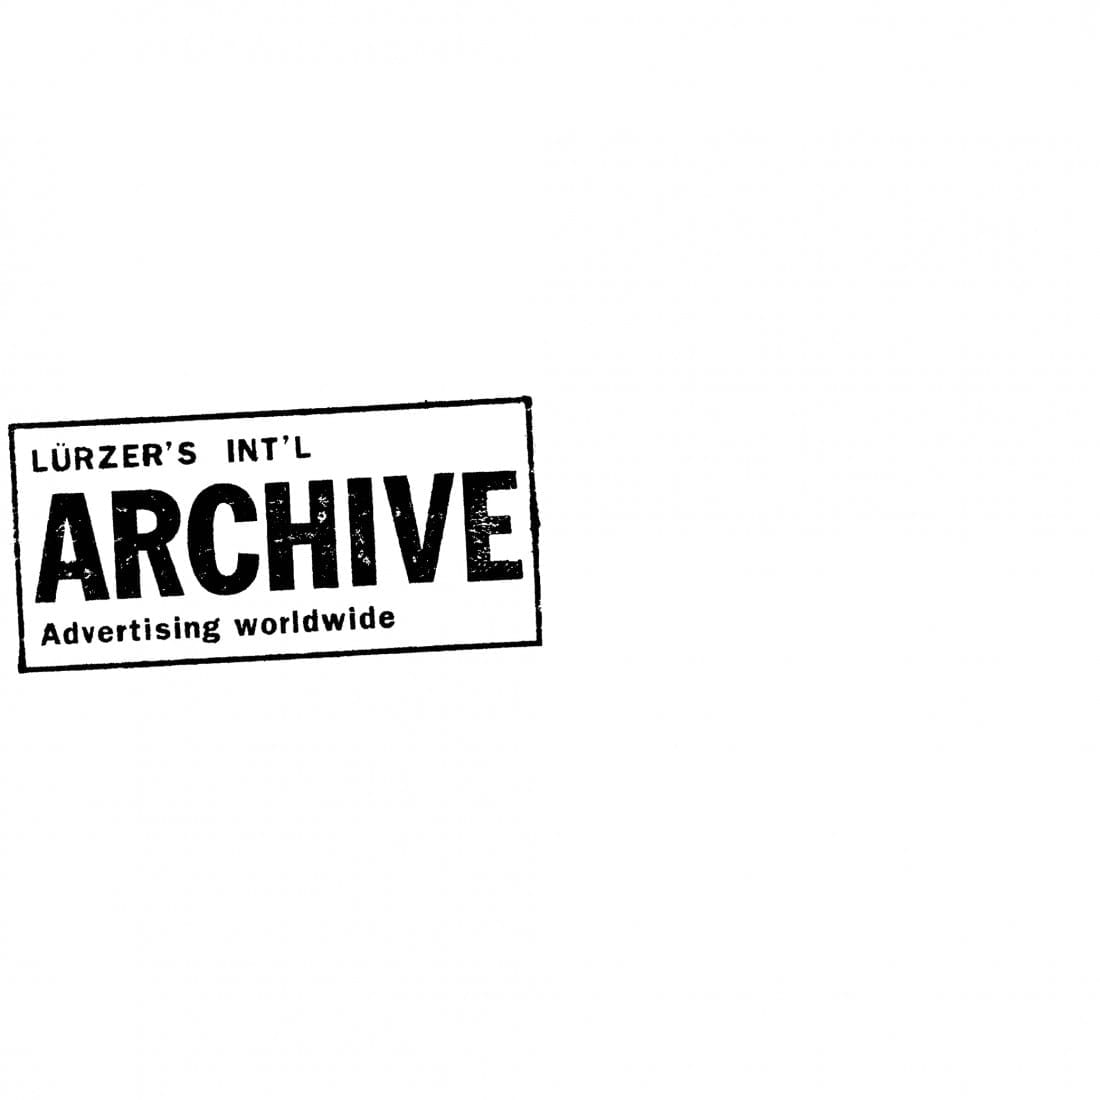 Lürzer's Archive - Advertising worldwide Logo